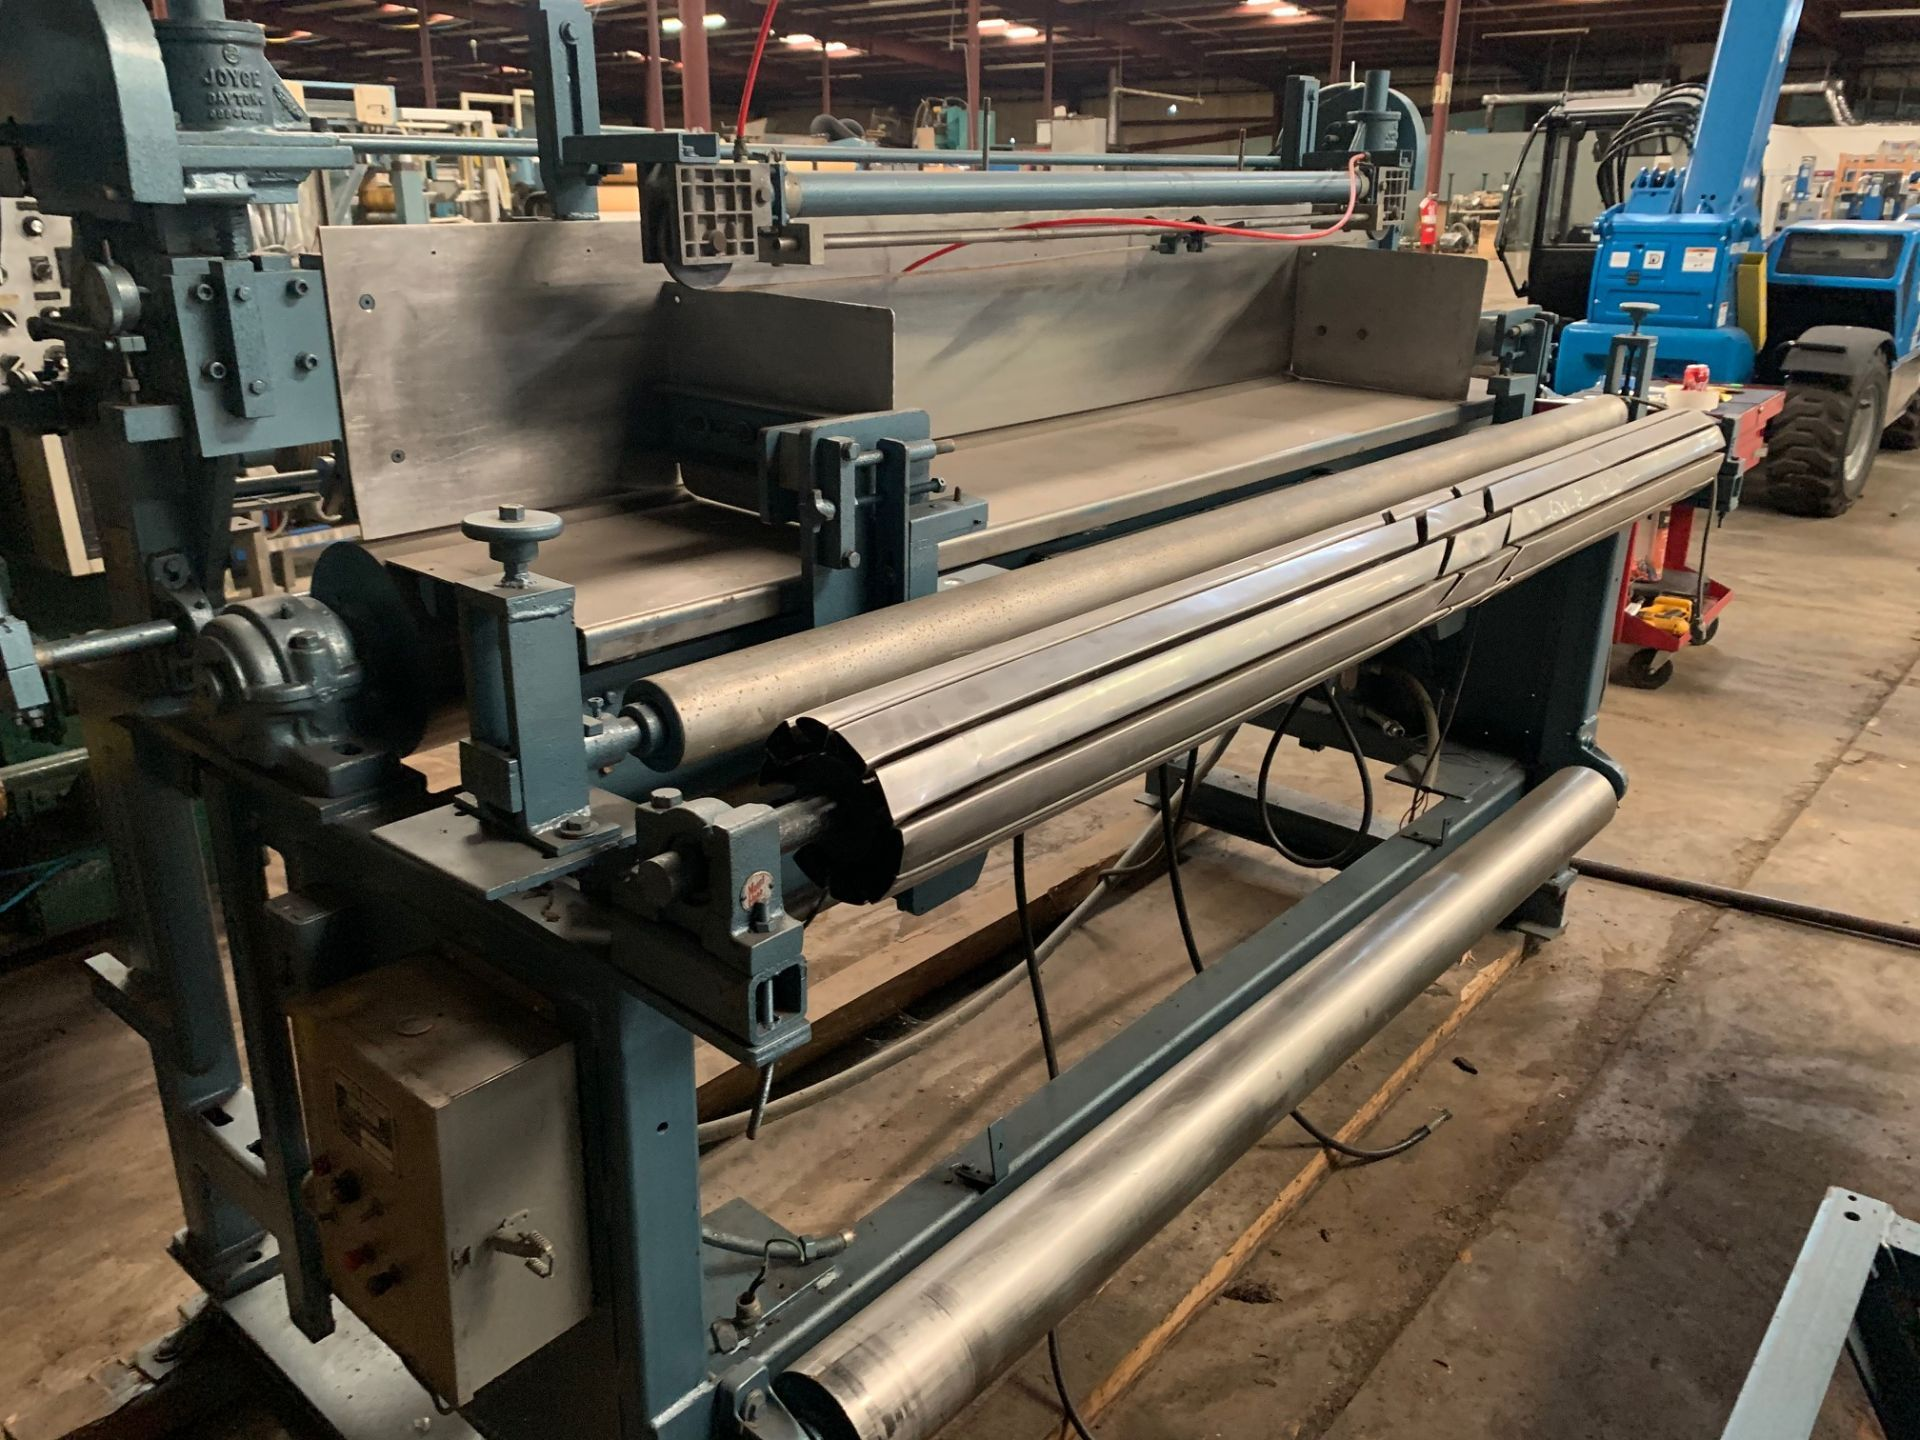 """Lot 21158 - Herman Rubber & Plastic Machinery, Serial# 0042019, Working Width 80"""", Good Condition, Rigging"""